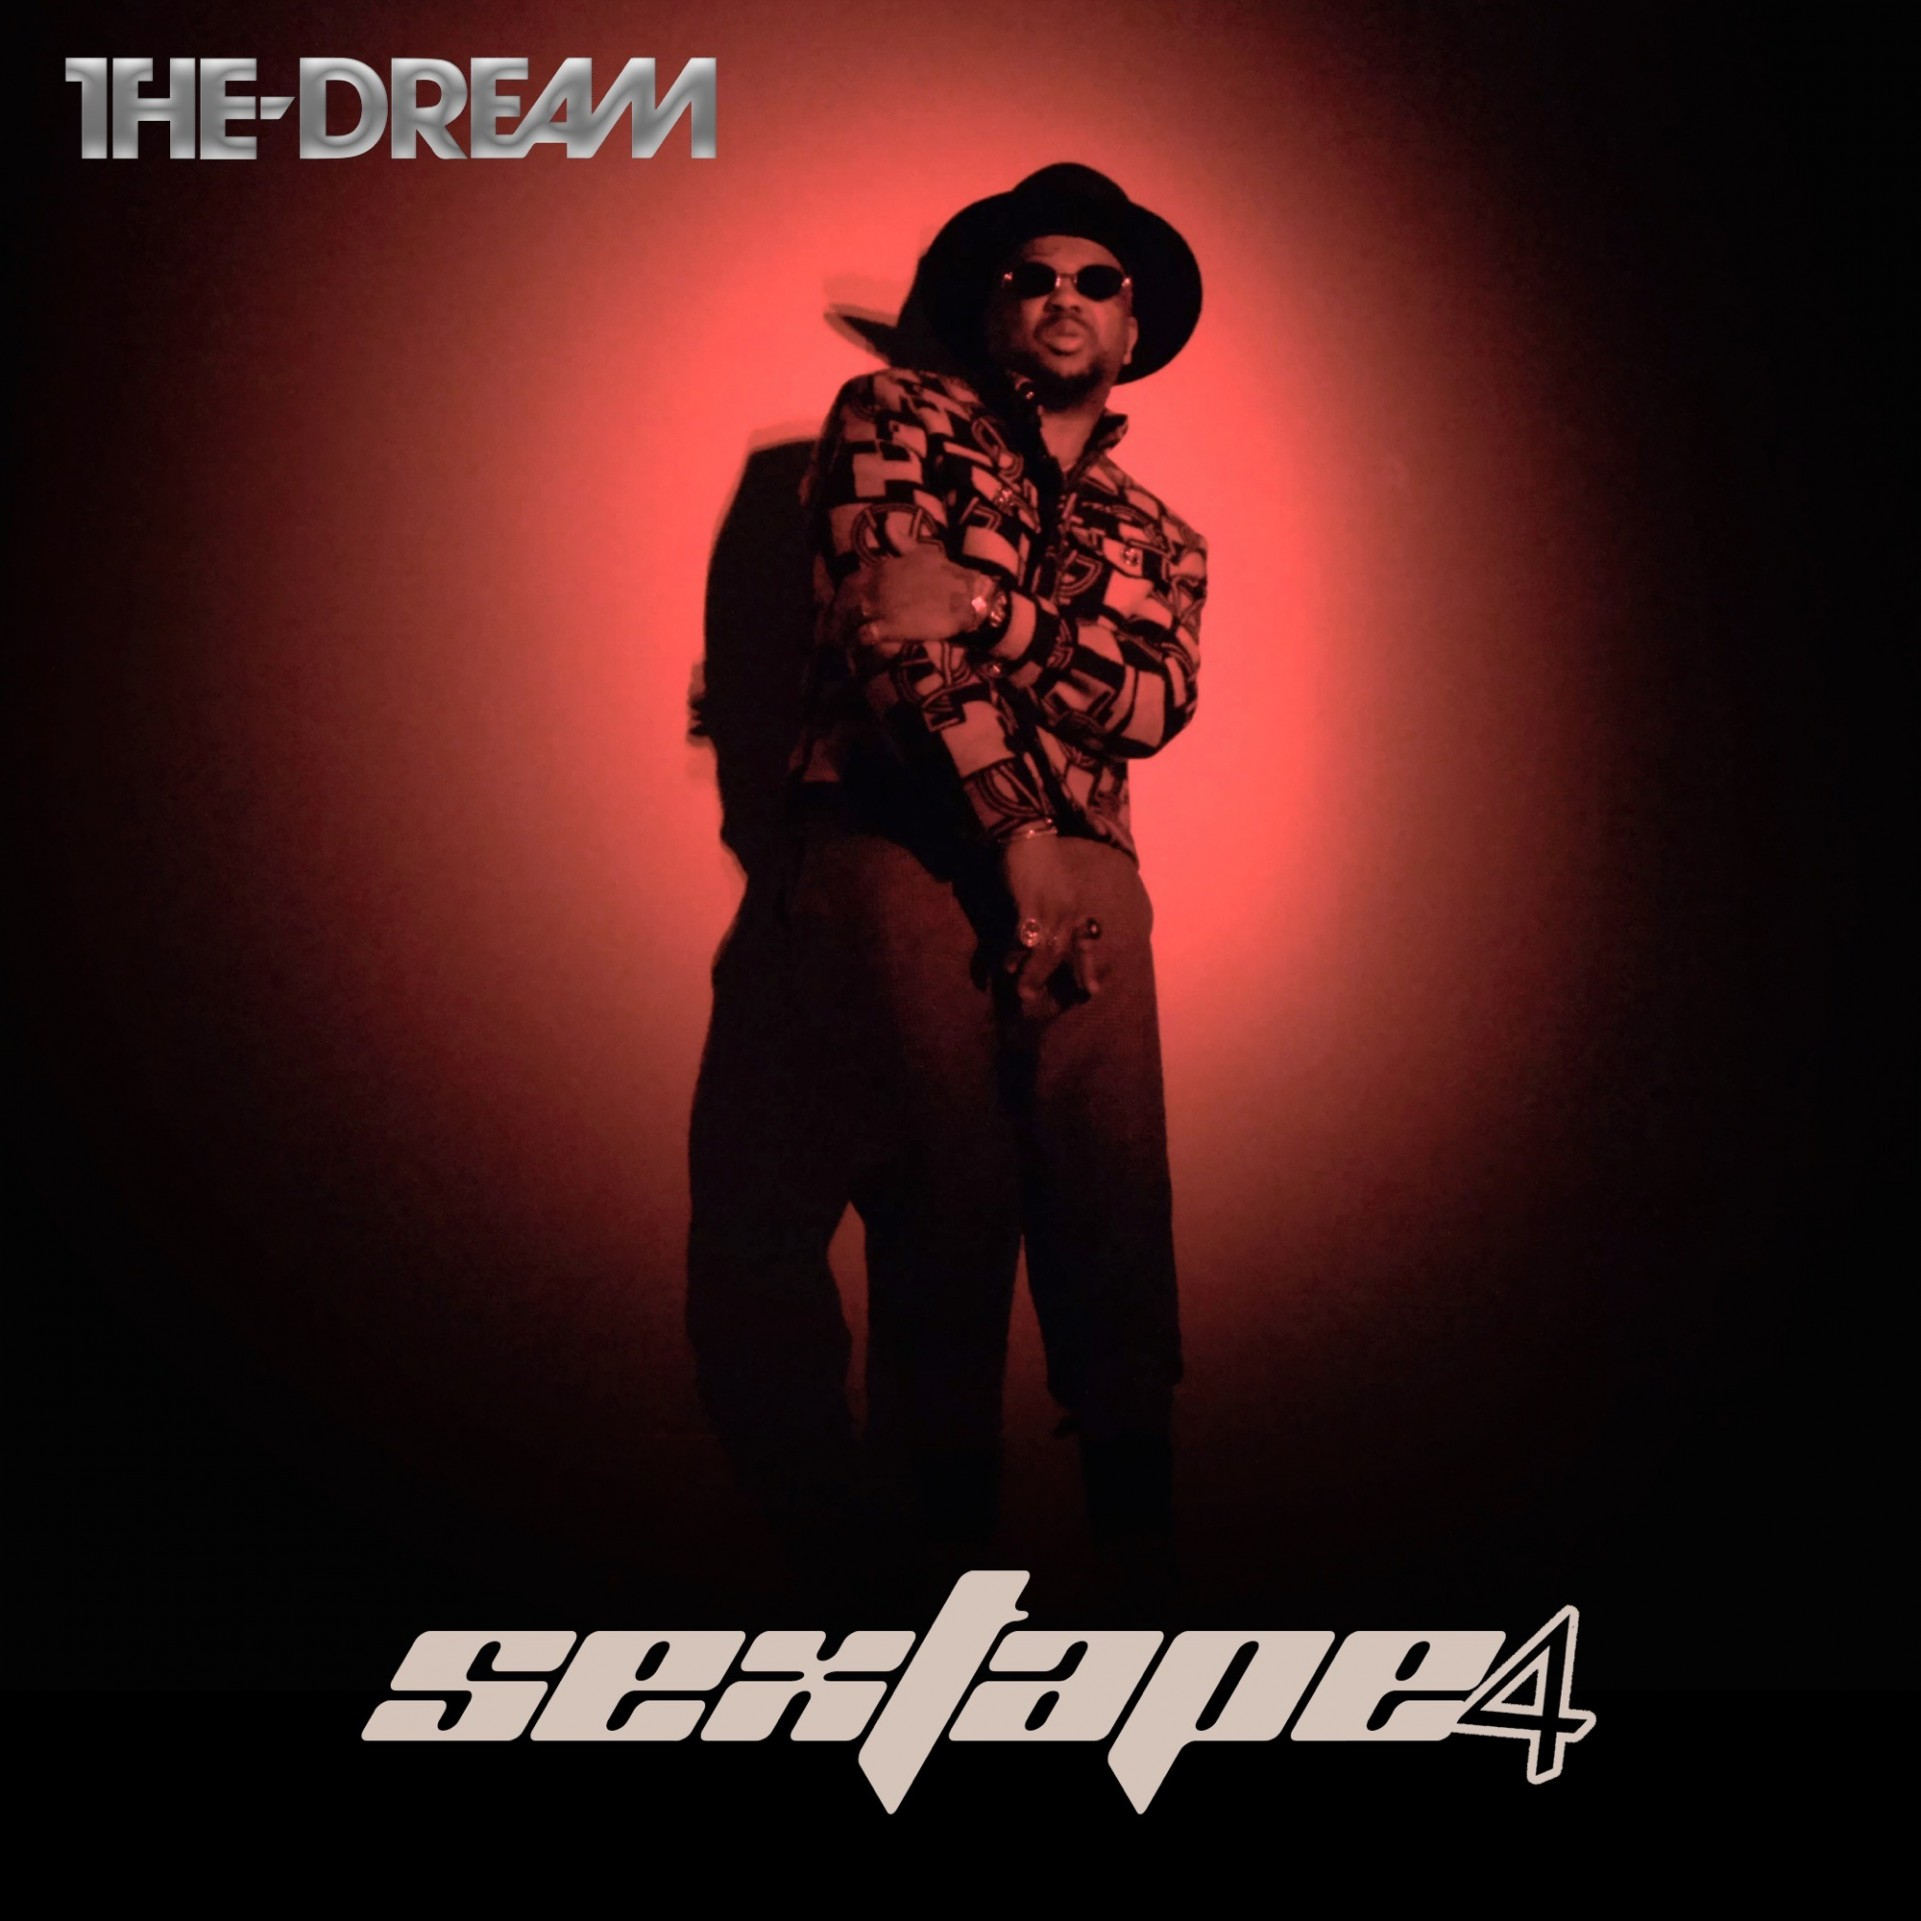 The Dream album cover font